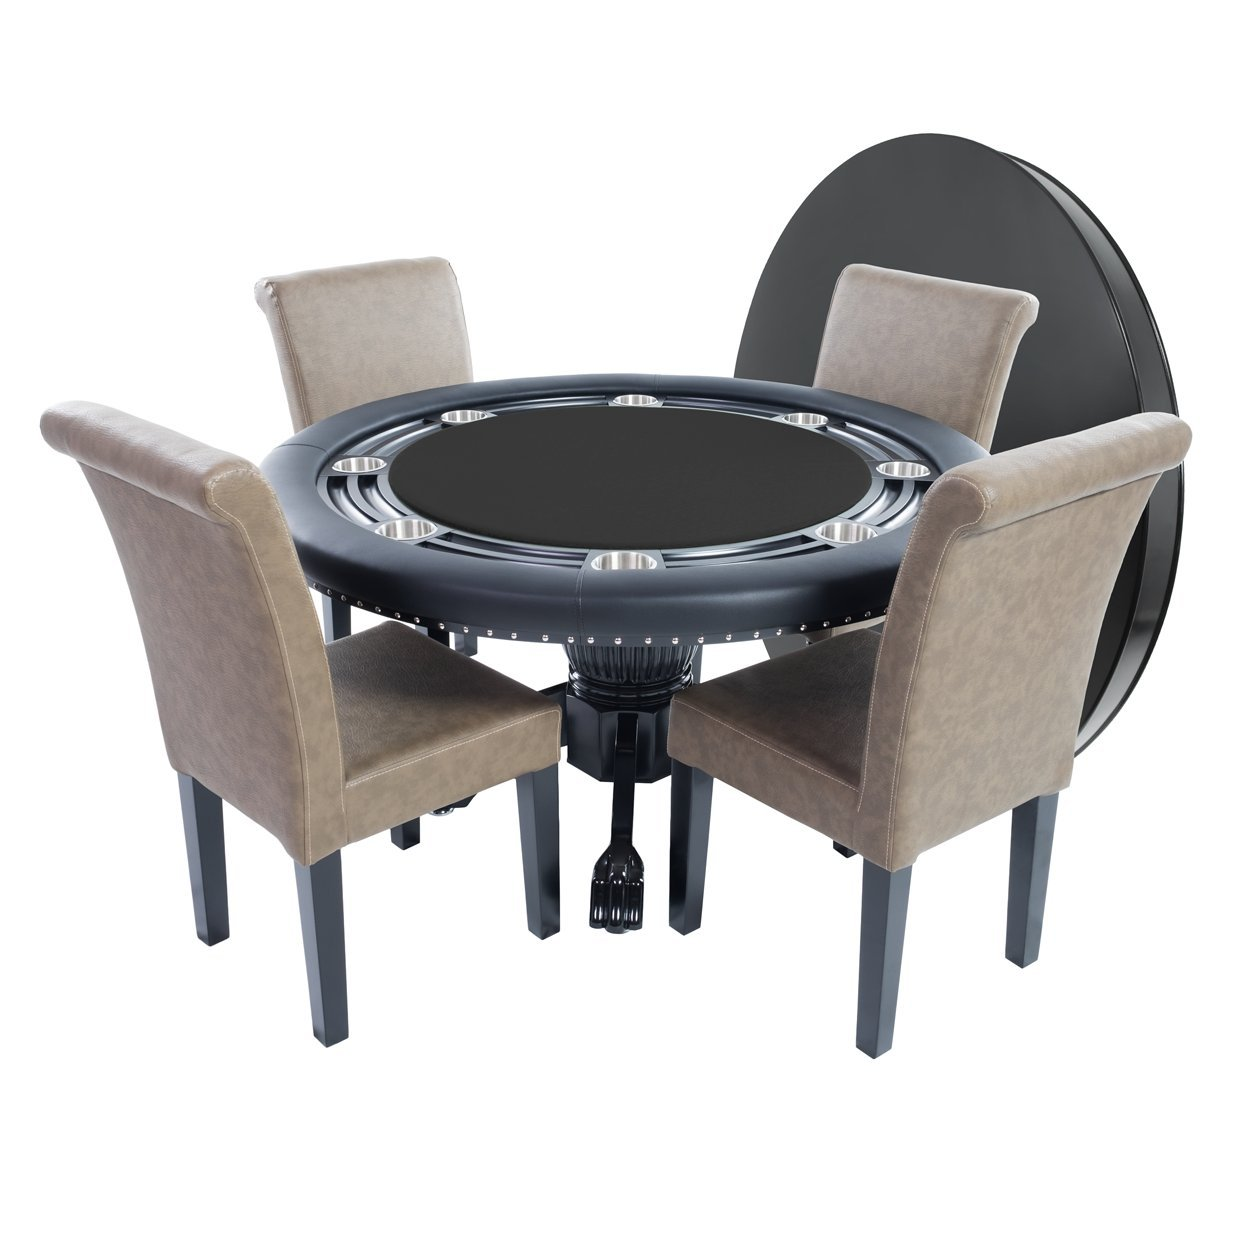 BBO Poker Nighthawk Poker Table for 8 Players with Black Speed Cloth Playing Surface, 55-Inch Round, Includes Matching Dining Top with 4 Lounge Chairs by BBO Poker